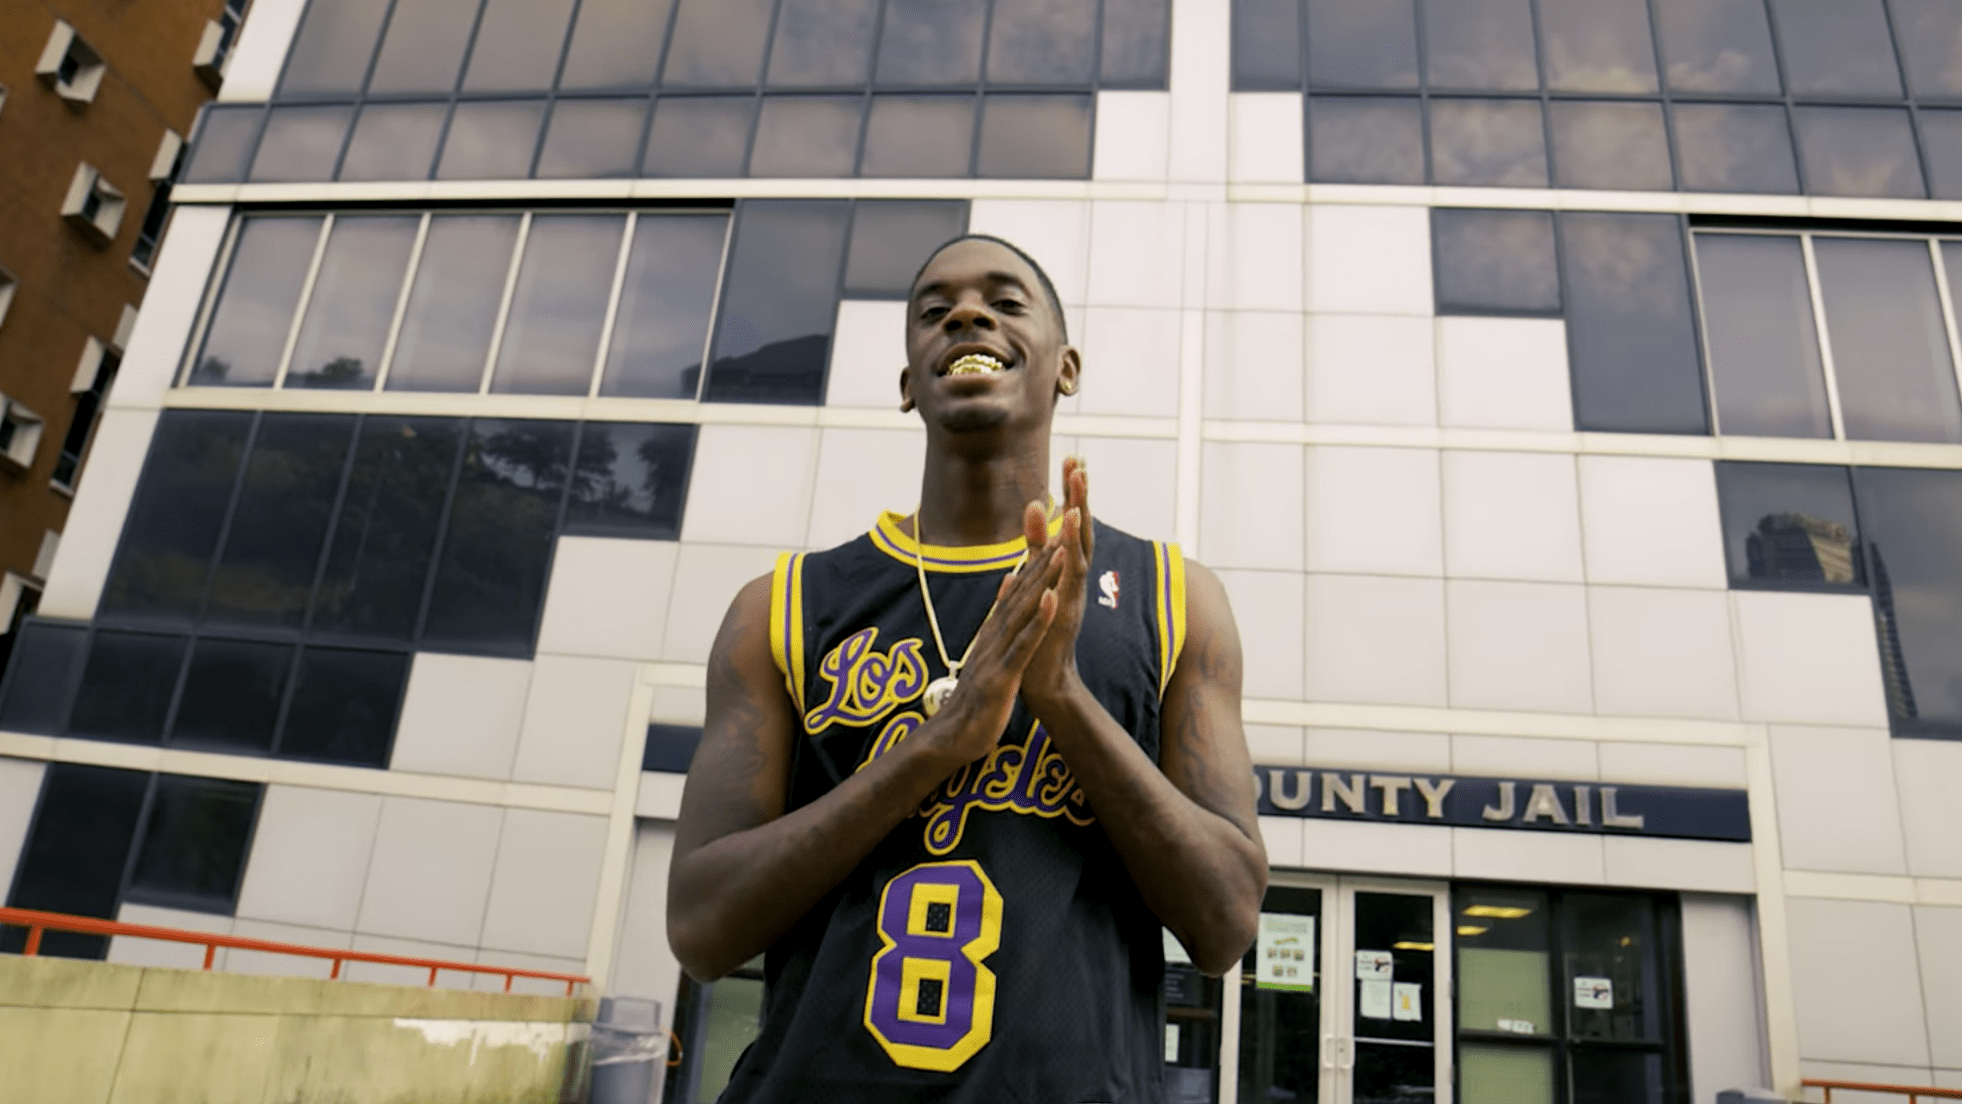 Jimmy Wopo, Rising Pittsburgh Rapper, Dead At 21 - MTV